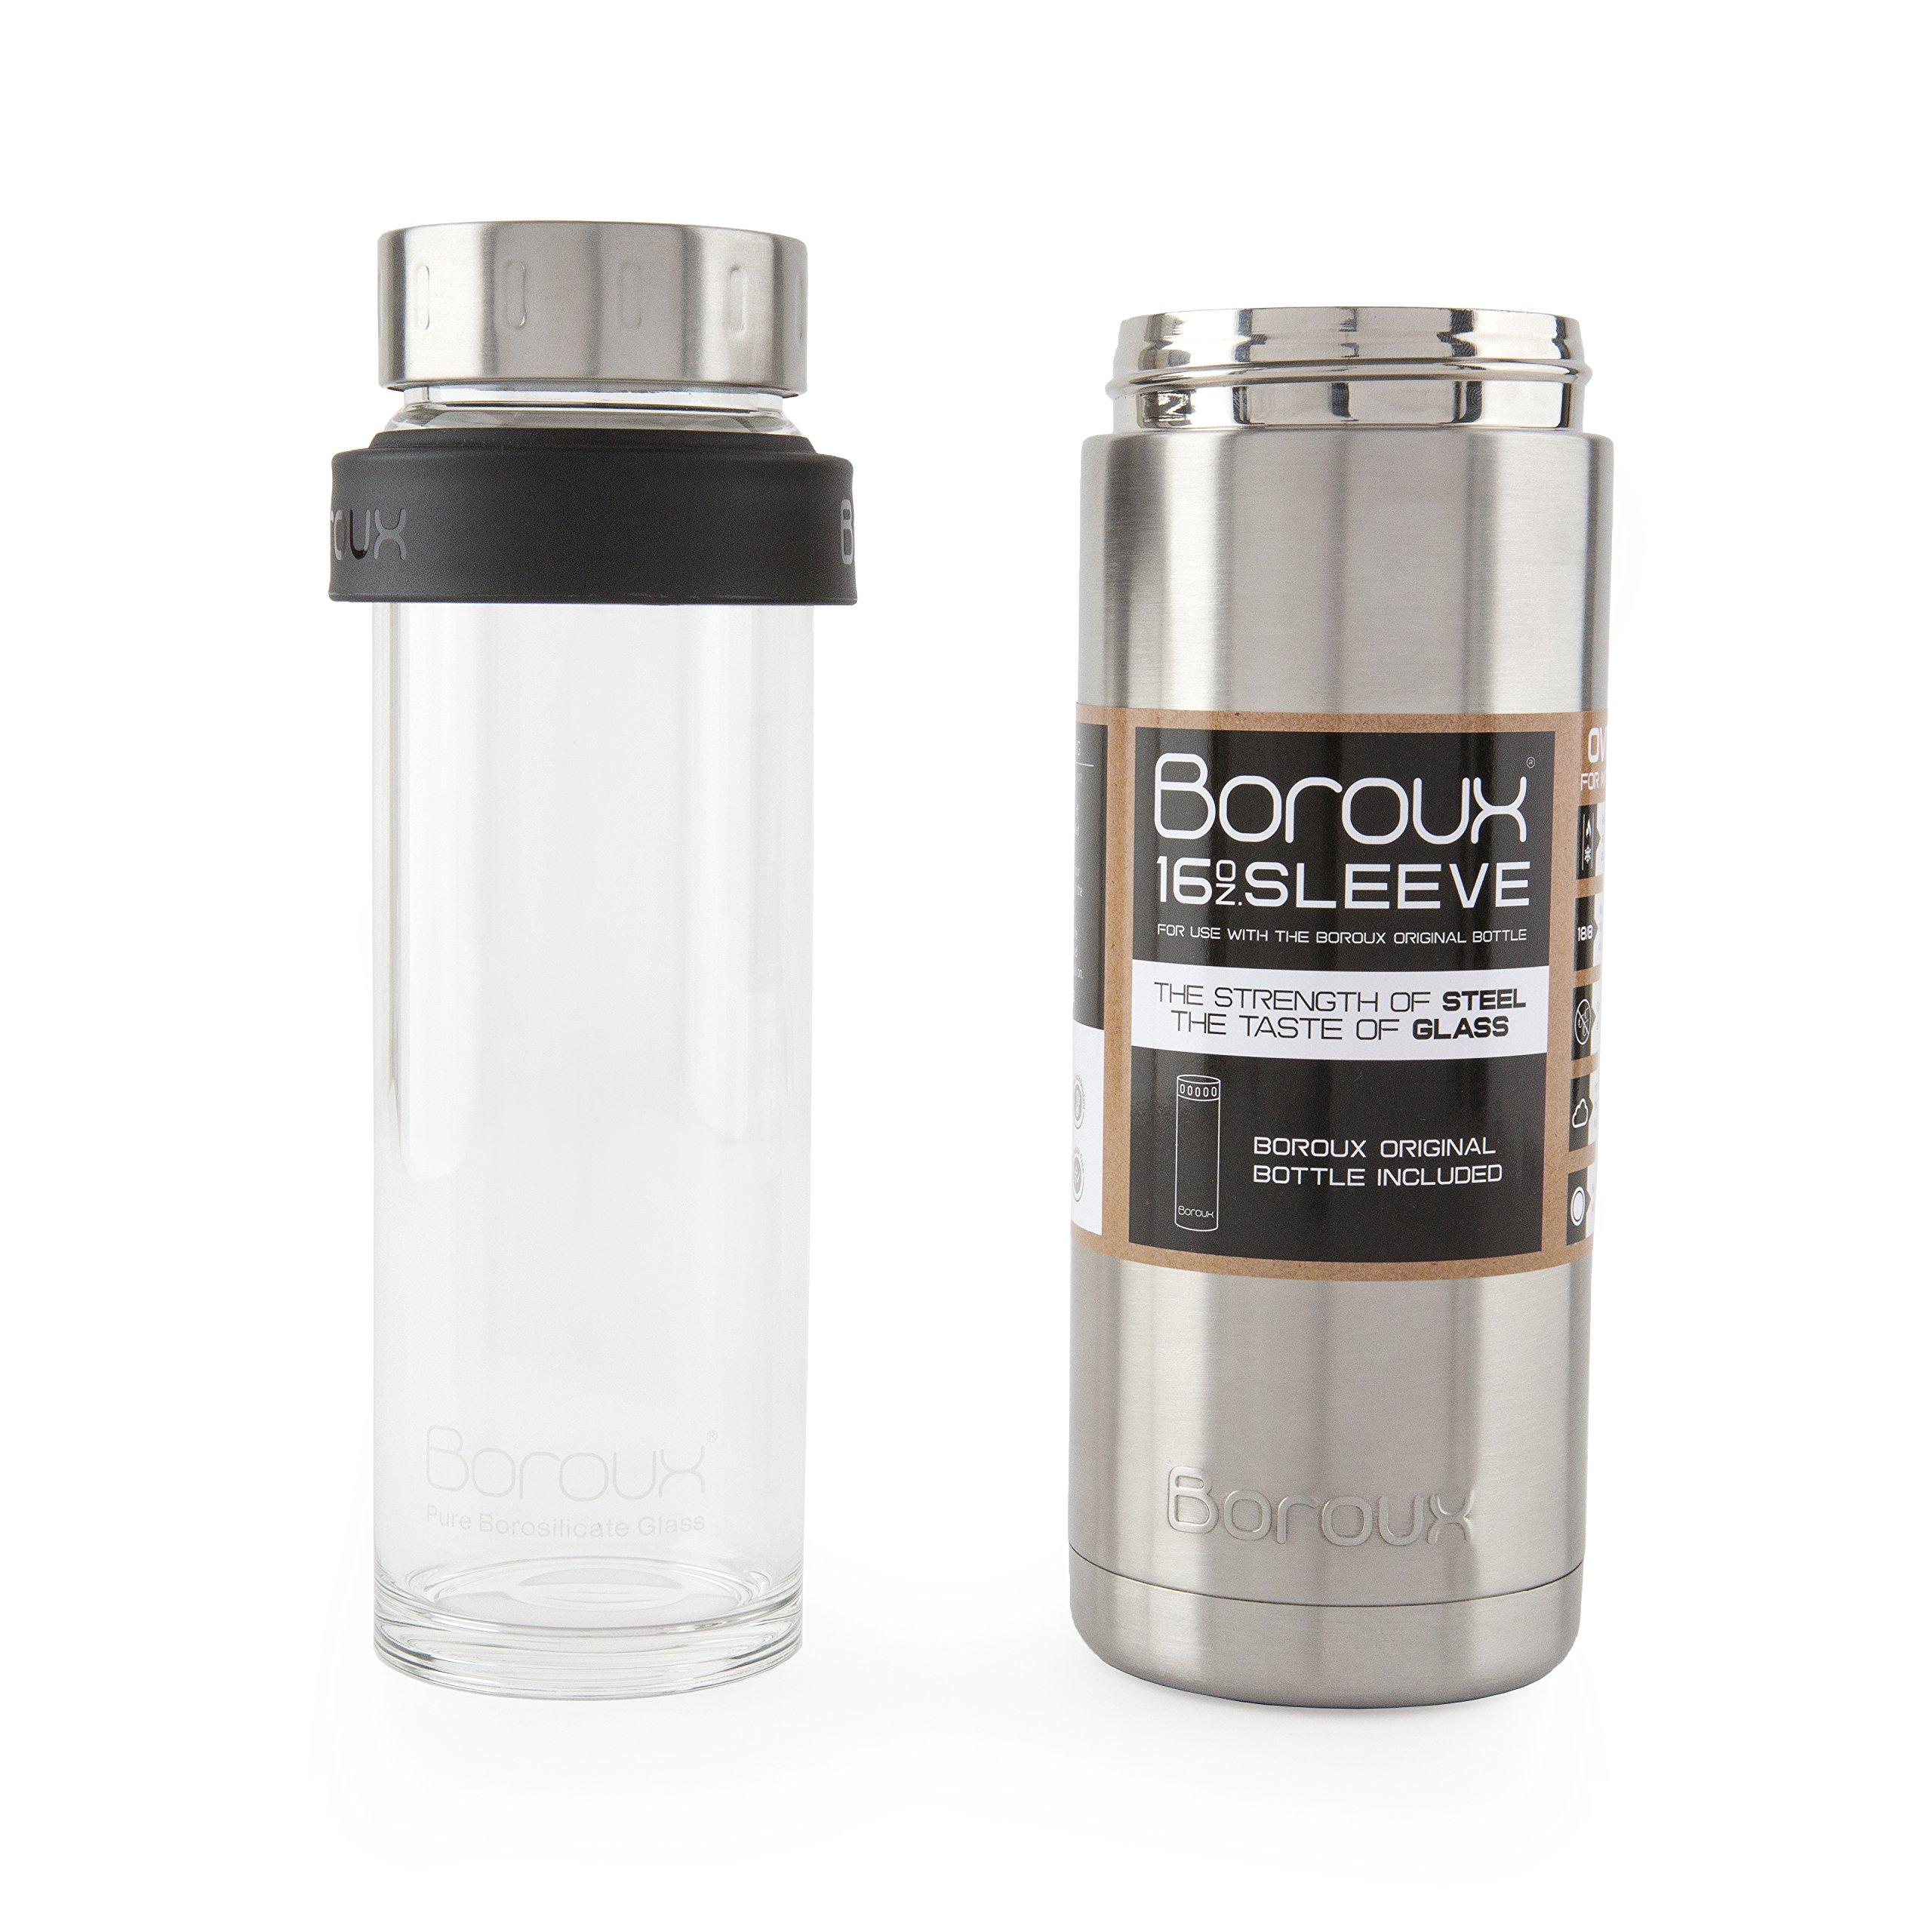 Boroux SLEEVE-Insulated Thermos Water Bottle .5 LITER. Handmade Pure Borosilicate Glass Water Bottle with DOUBLE WALLED STAINLESS STEEL VACUUM SEALED PROTECTION. No Slip Grip Technology by Boroux